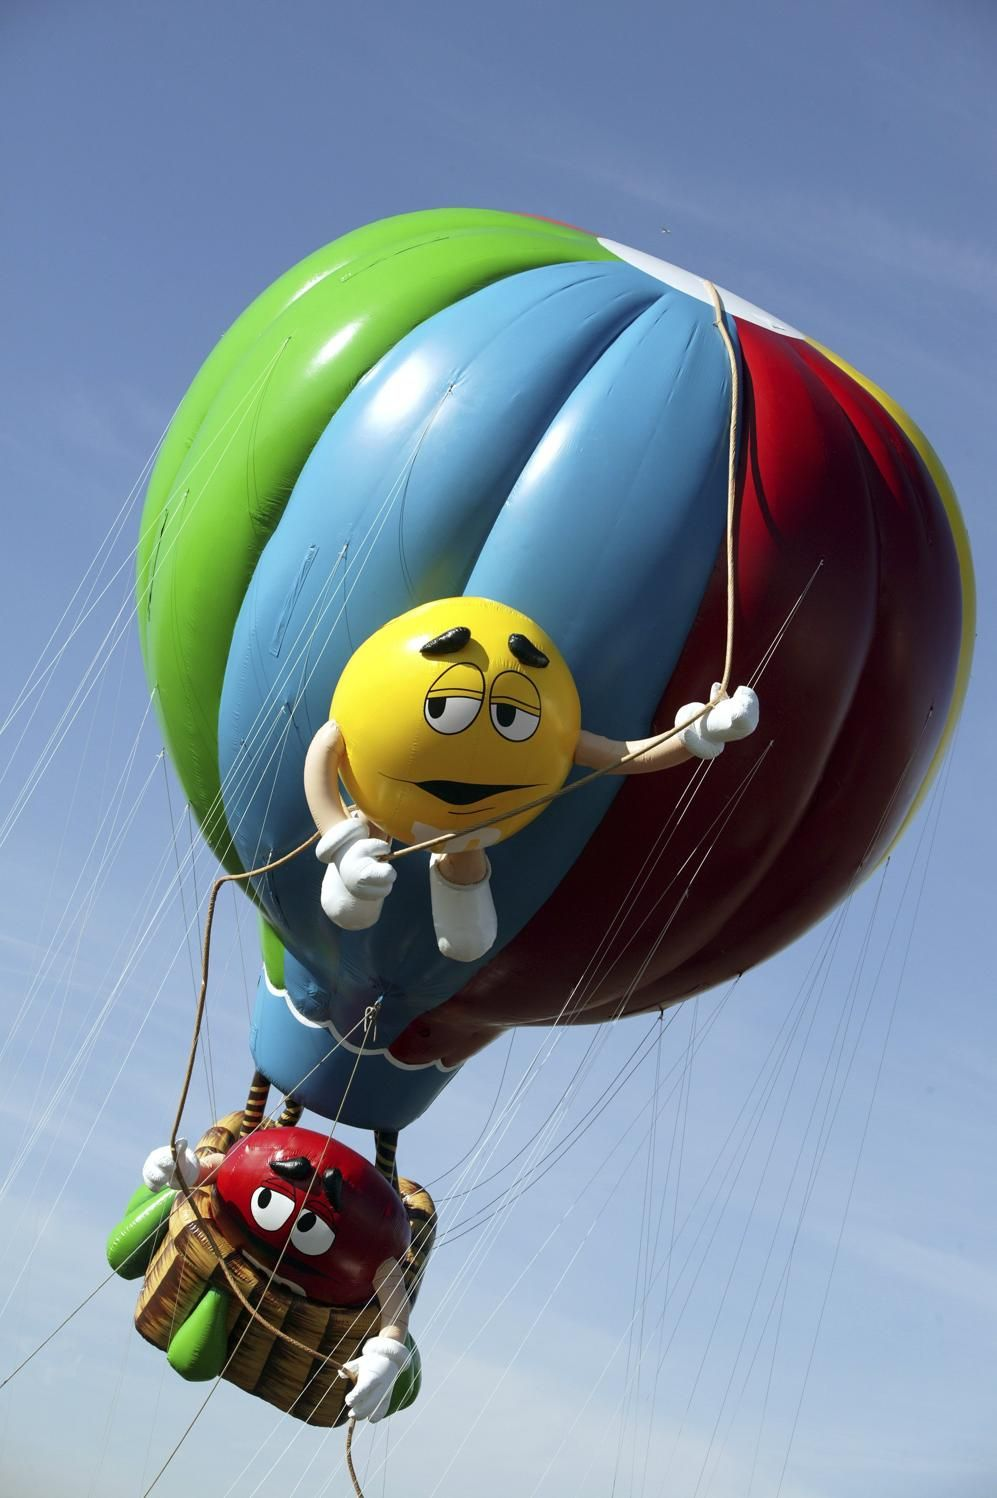 27 Memorable Macy S Thanksgiving Day Parade Balloons Thanksgiving Day Parade Macy S Thanksgiving Day Parade Macys Thanksgiving Parade